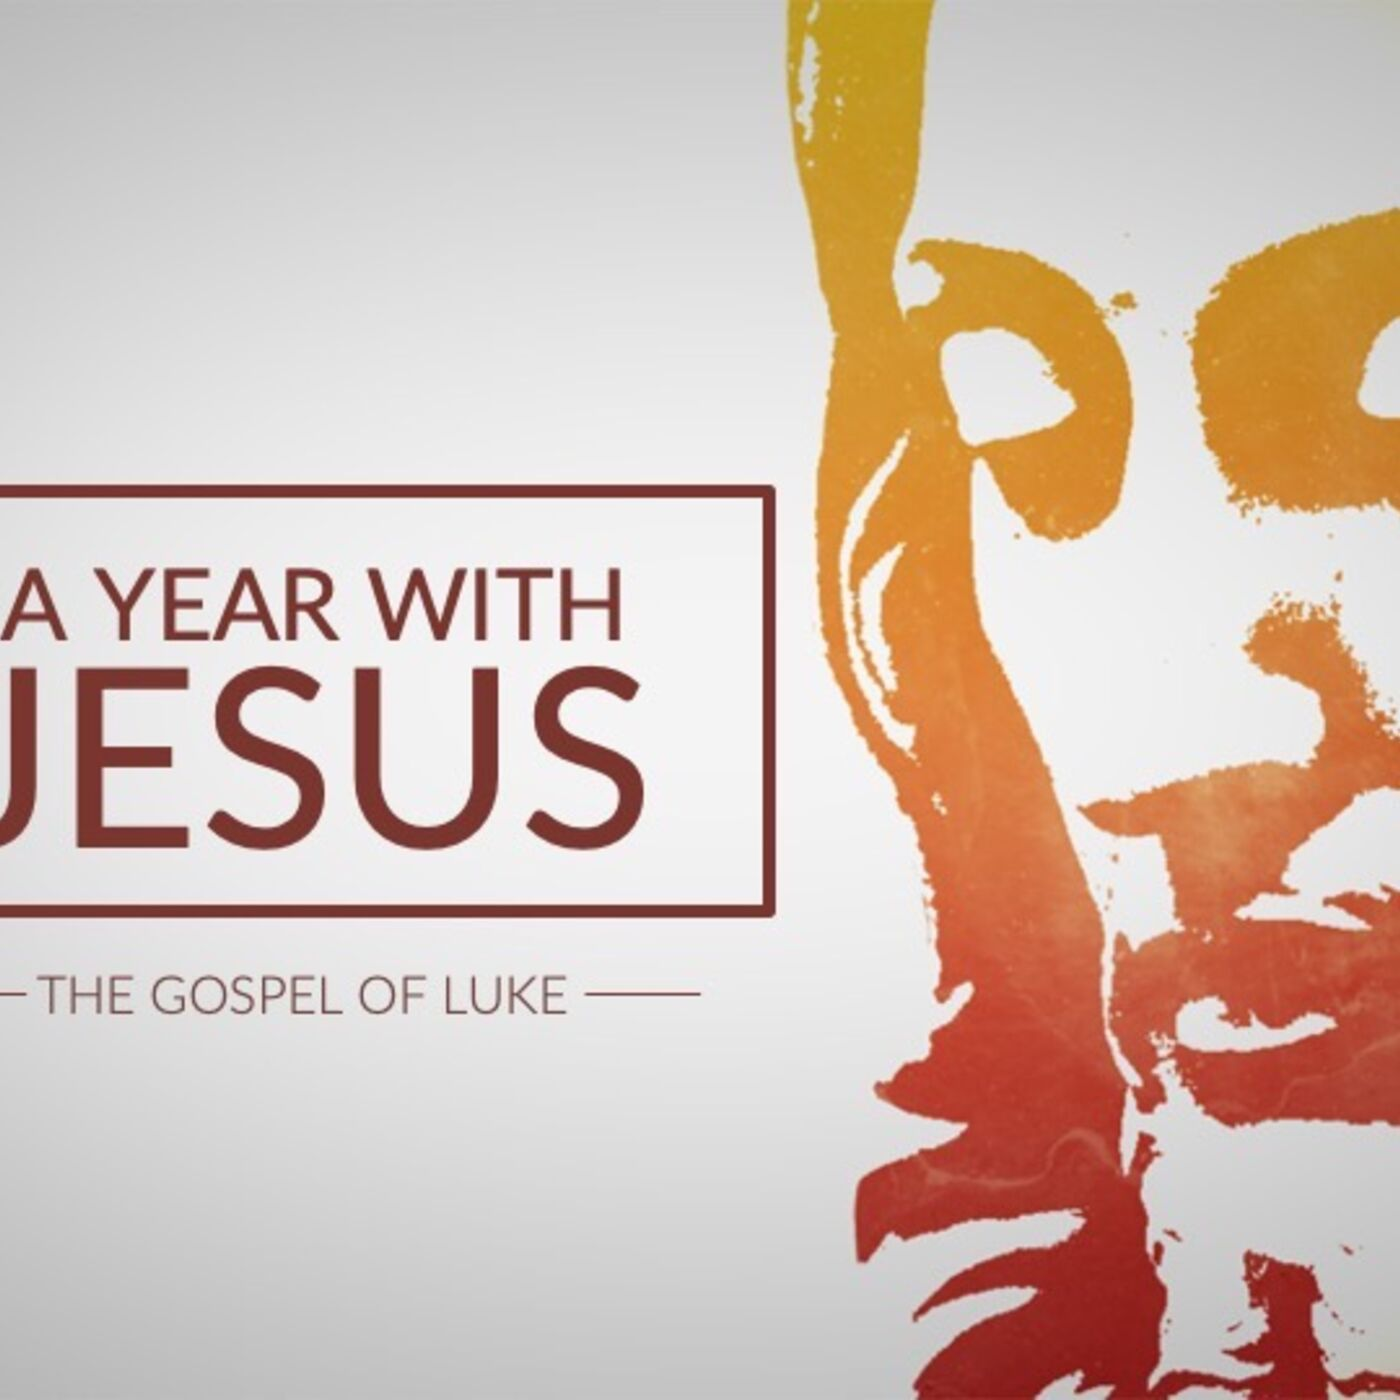 A Year With Jesus: A Sign For All Times (Luke 11:29-36)